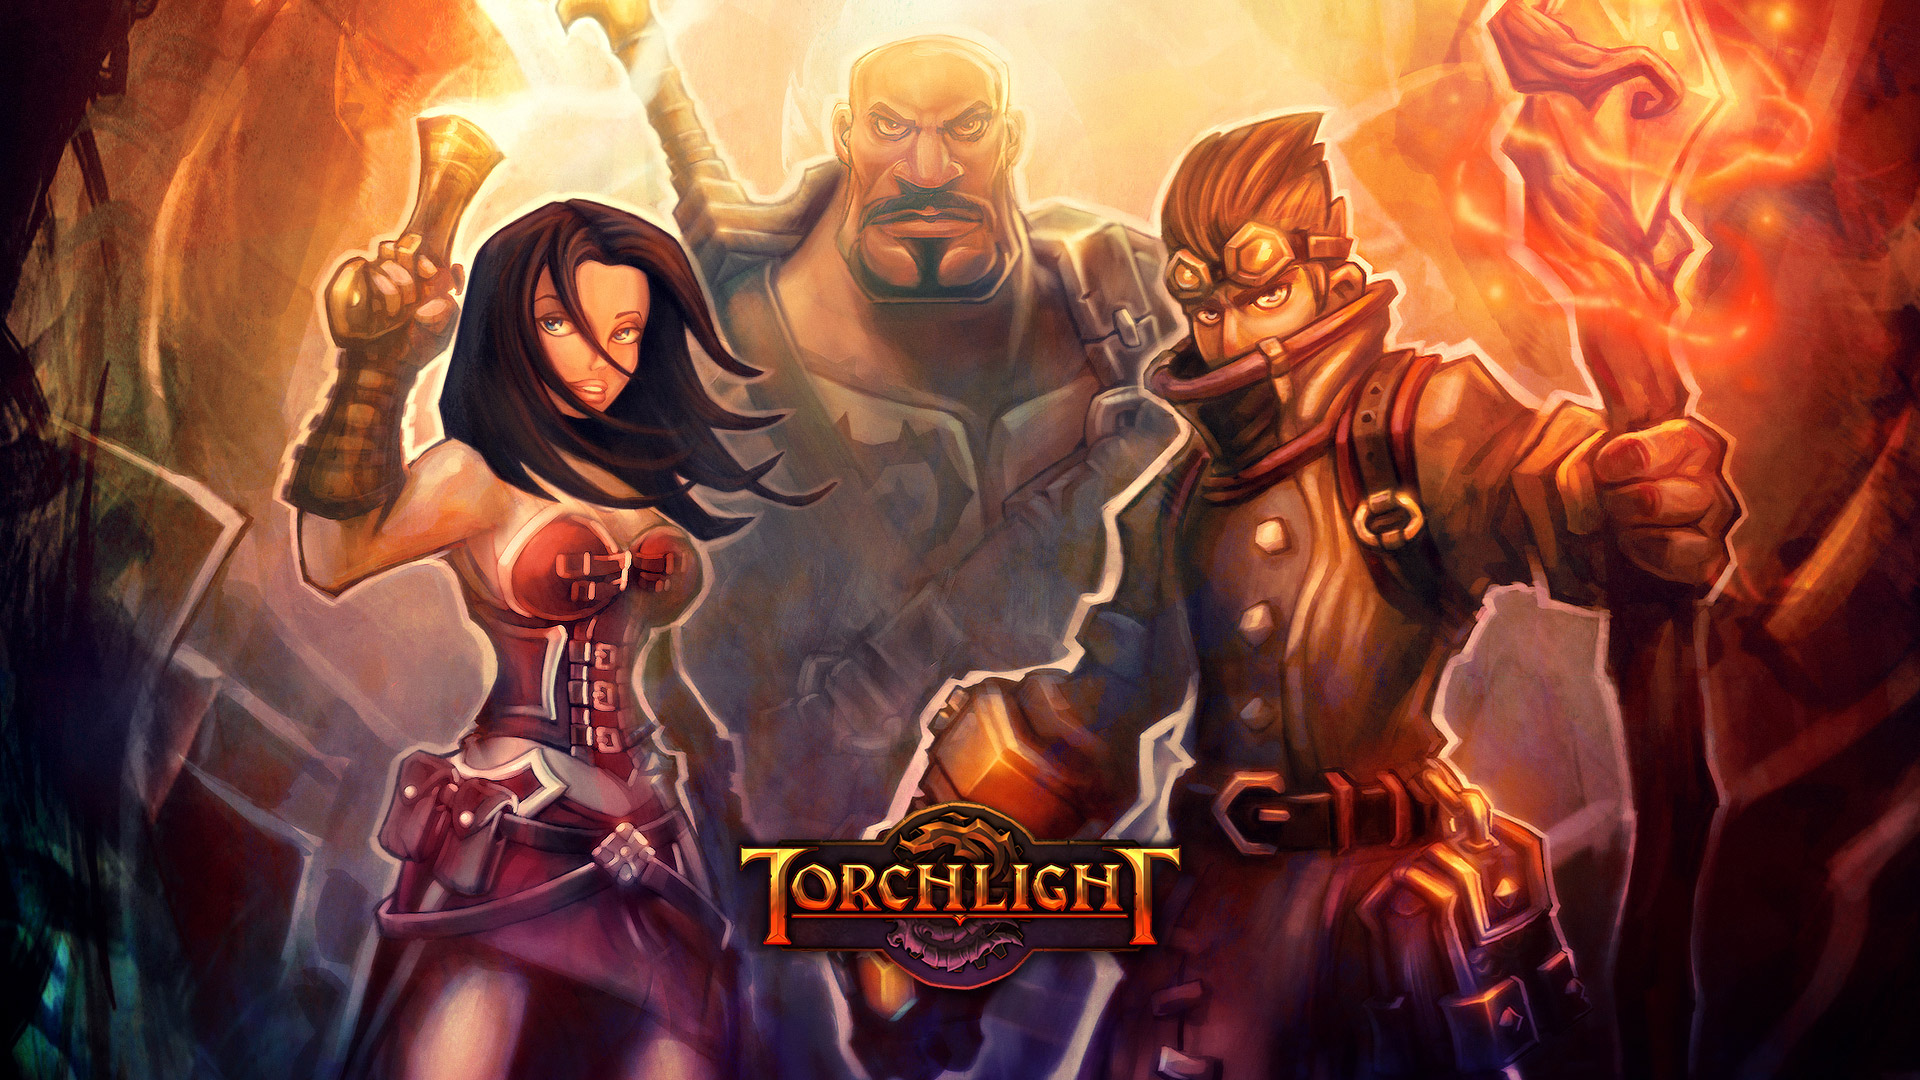 Free Torchlight Wallpaper in 1920x1080